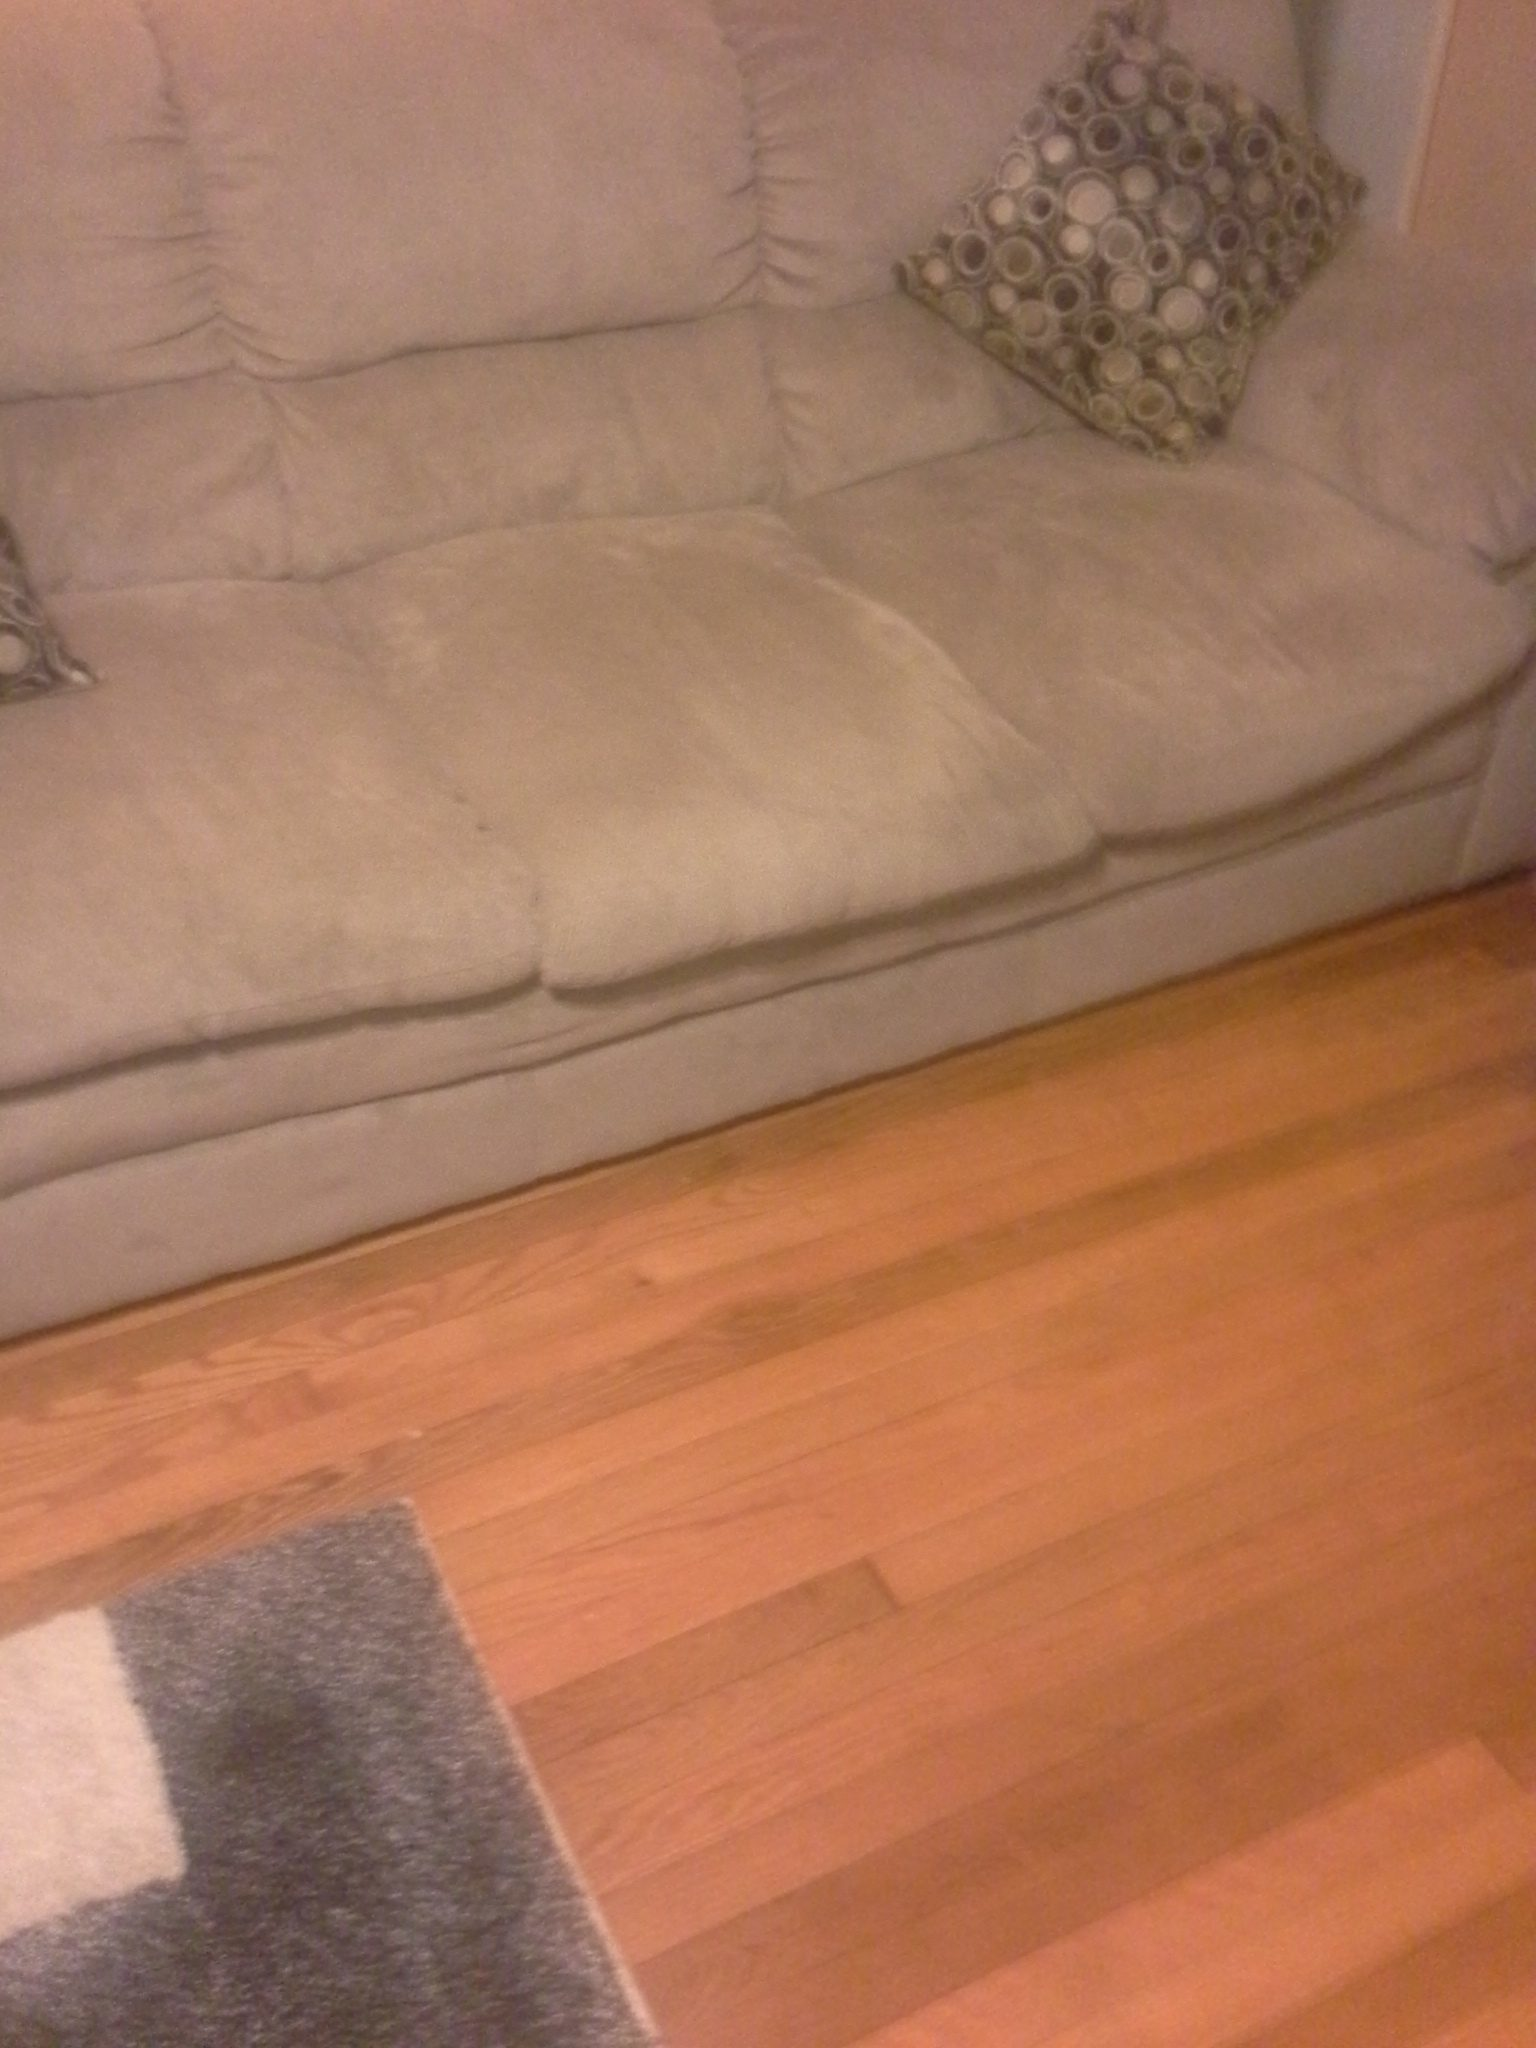 Farmers Home Furniture Savannah Ga General Home Design Ideas. My Husband  And I Bought A New Couch That Had Recliners In It And A Table